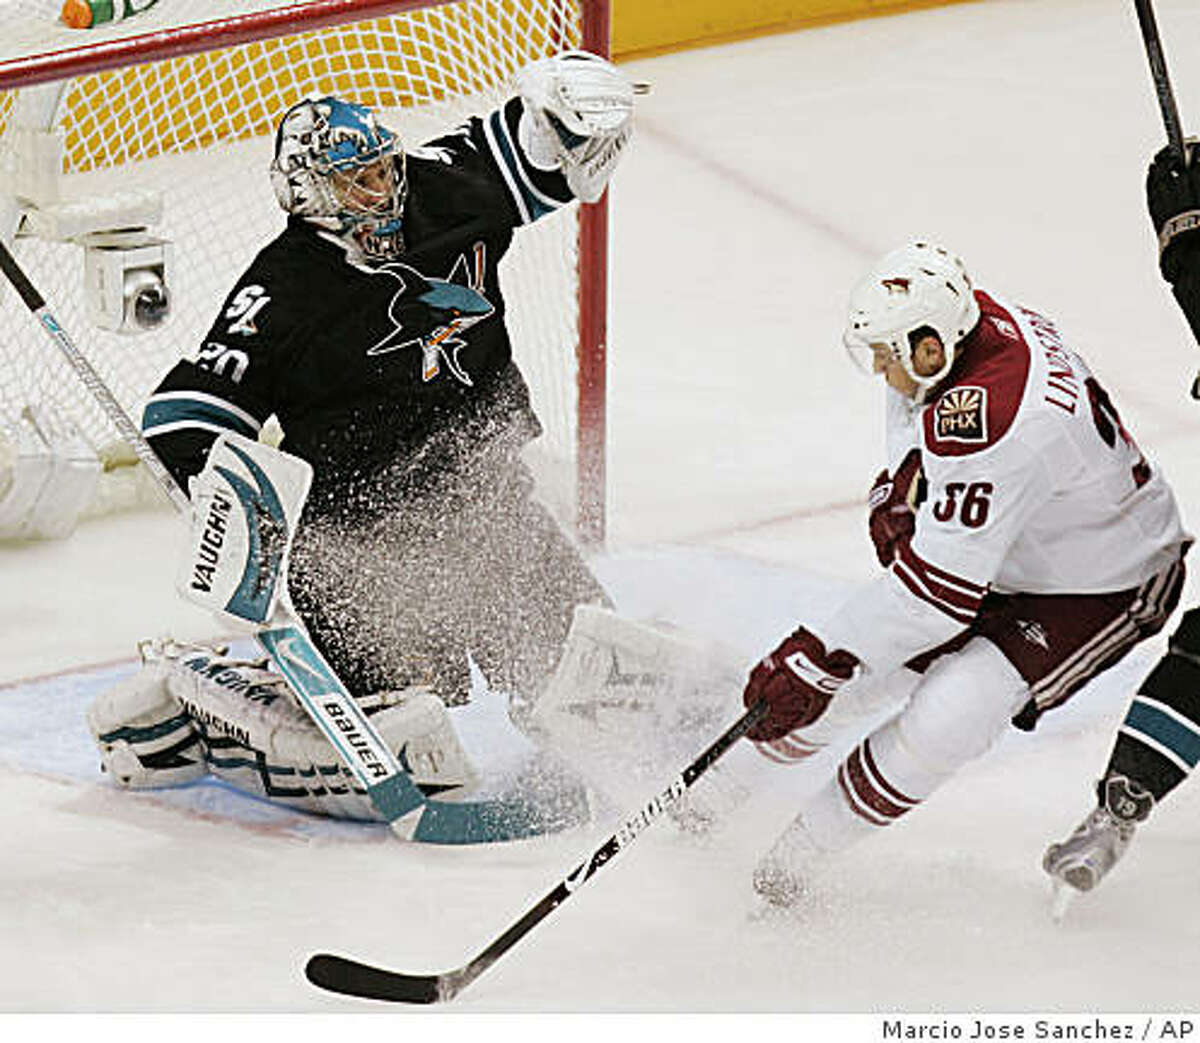 San Jose Sharks goalie Evgeni Nabokov, left, stops a shot from Phoenix Coyotes left wing Joakim Lindstrom during the first period.